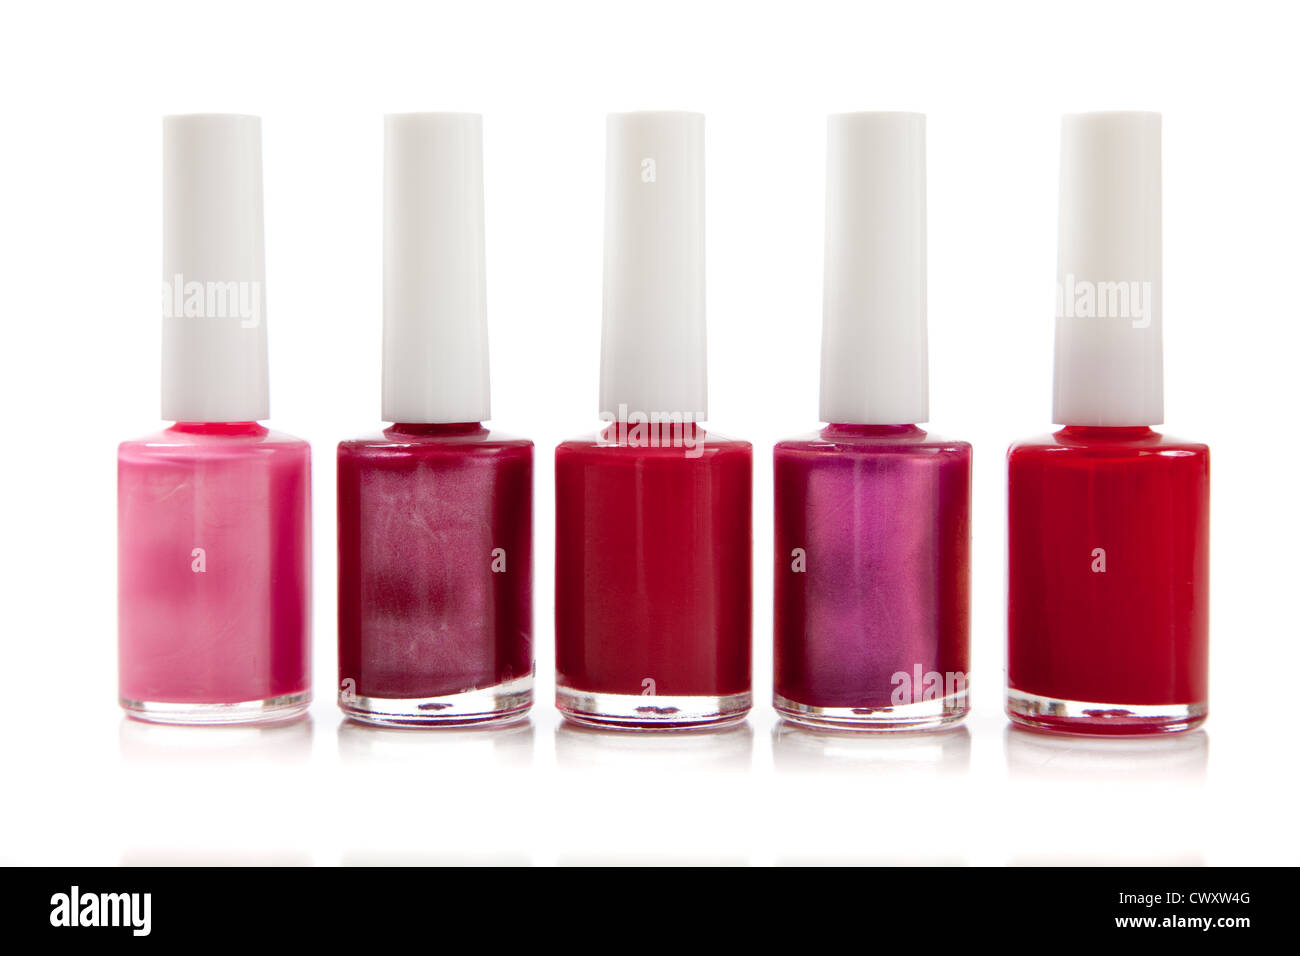 71901f0a82c4 A row of various shades of red fingernail polish on a white background